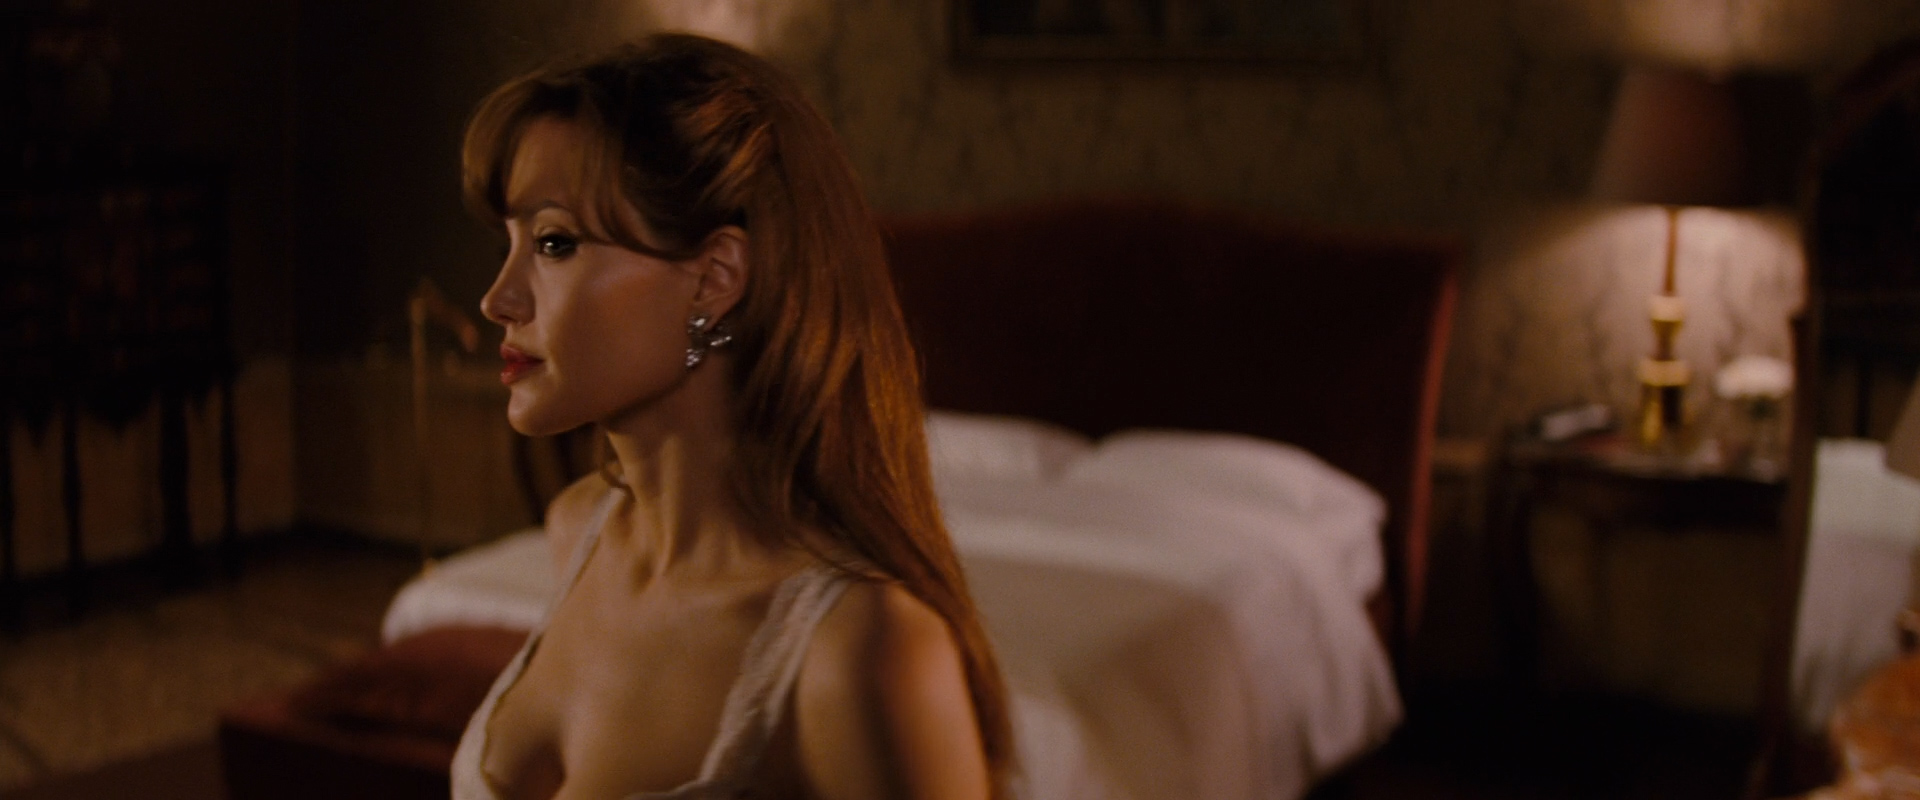 Angelina Jolie Hot Sexy And See Through In The Tourist 2010 Hd1080P-3109